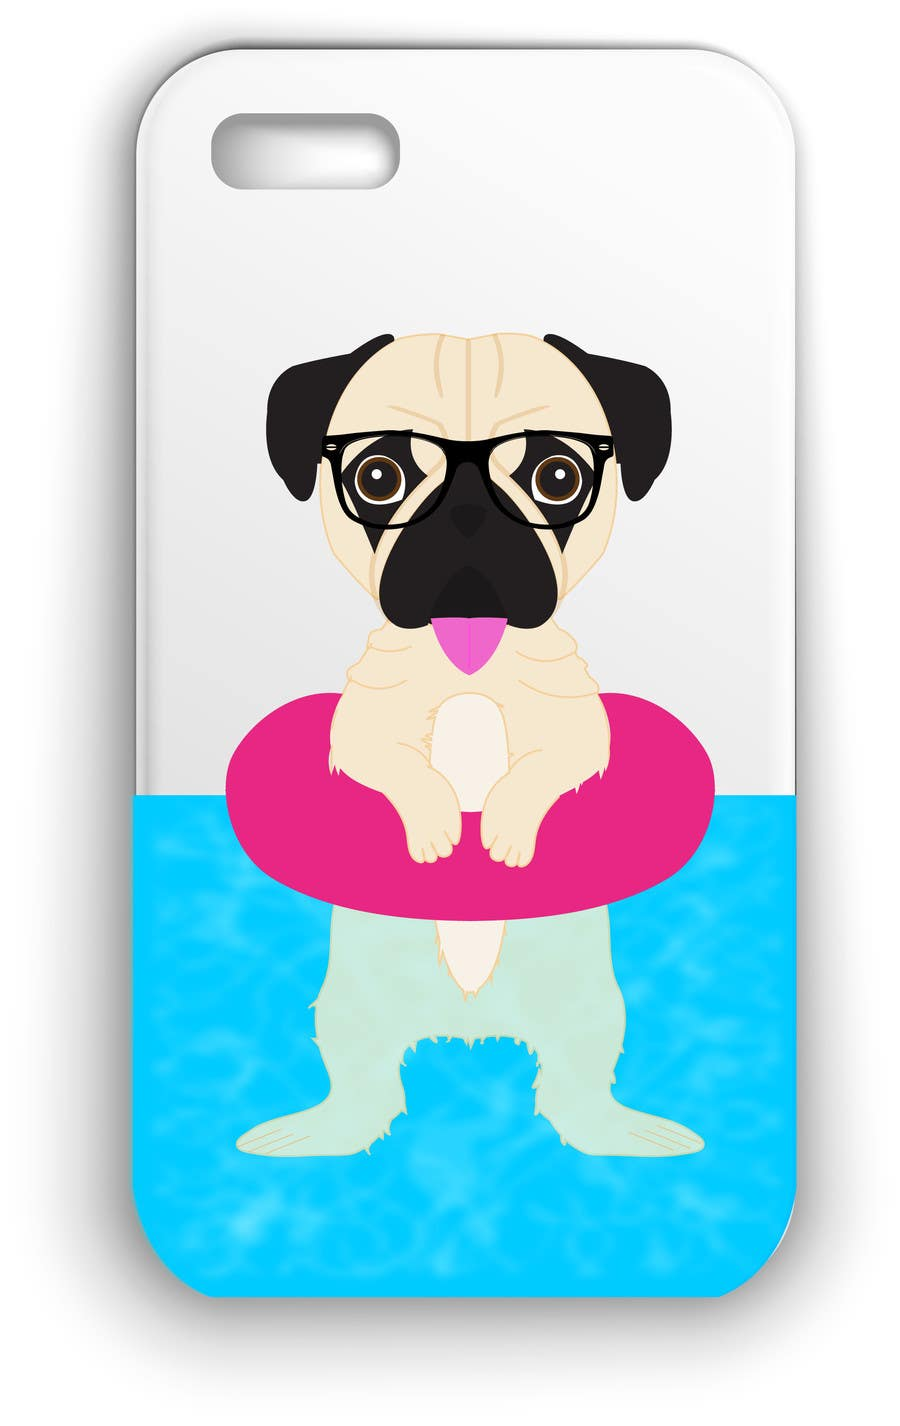 Proposition n°12 du concours Swimming Pug Illustration Required